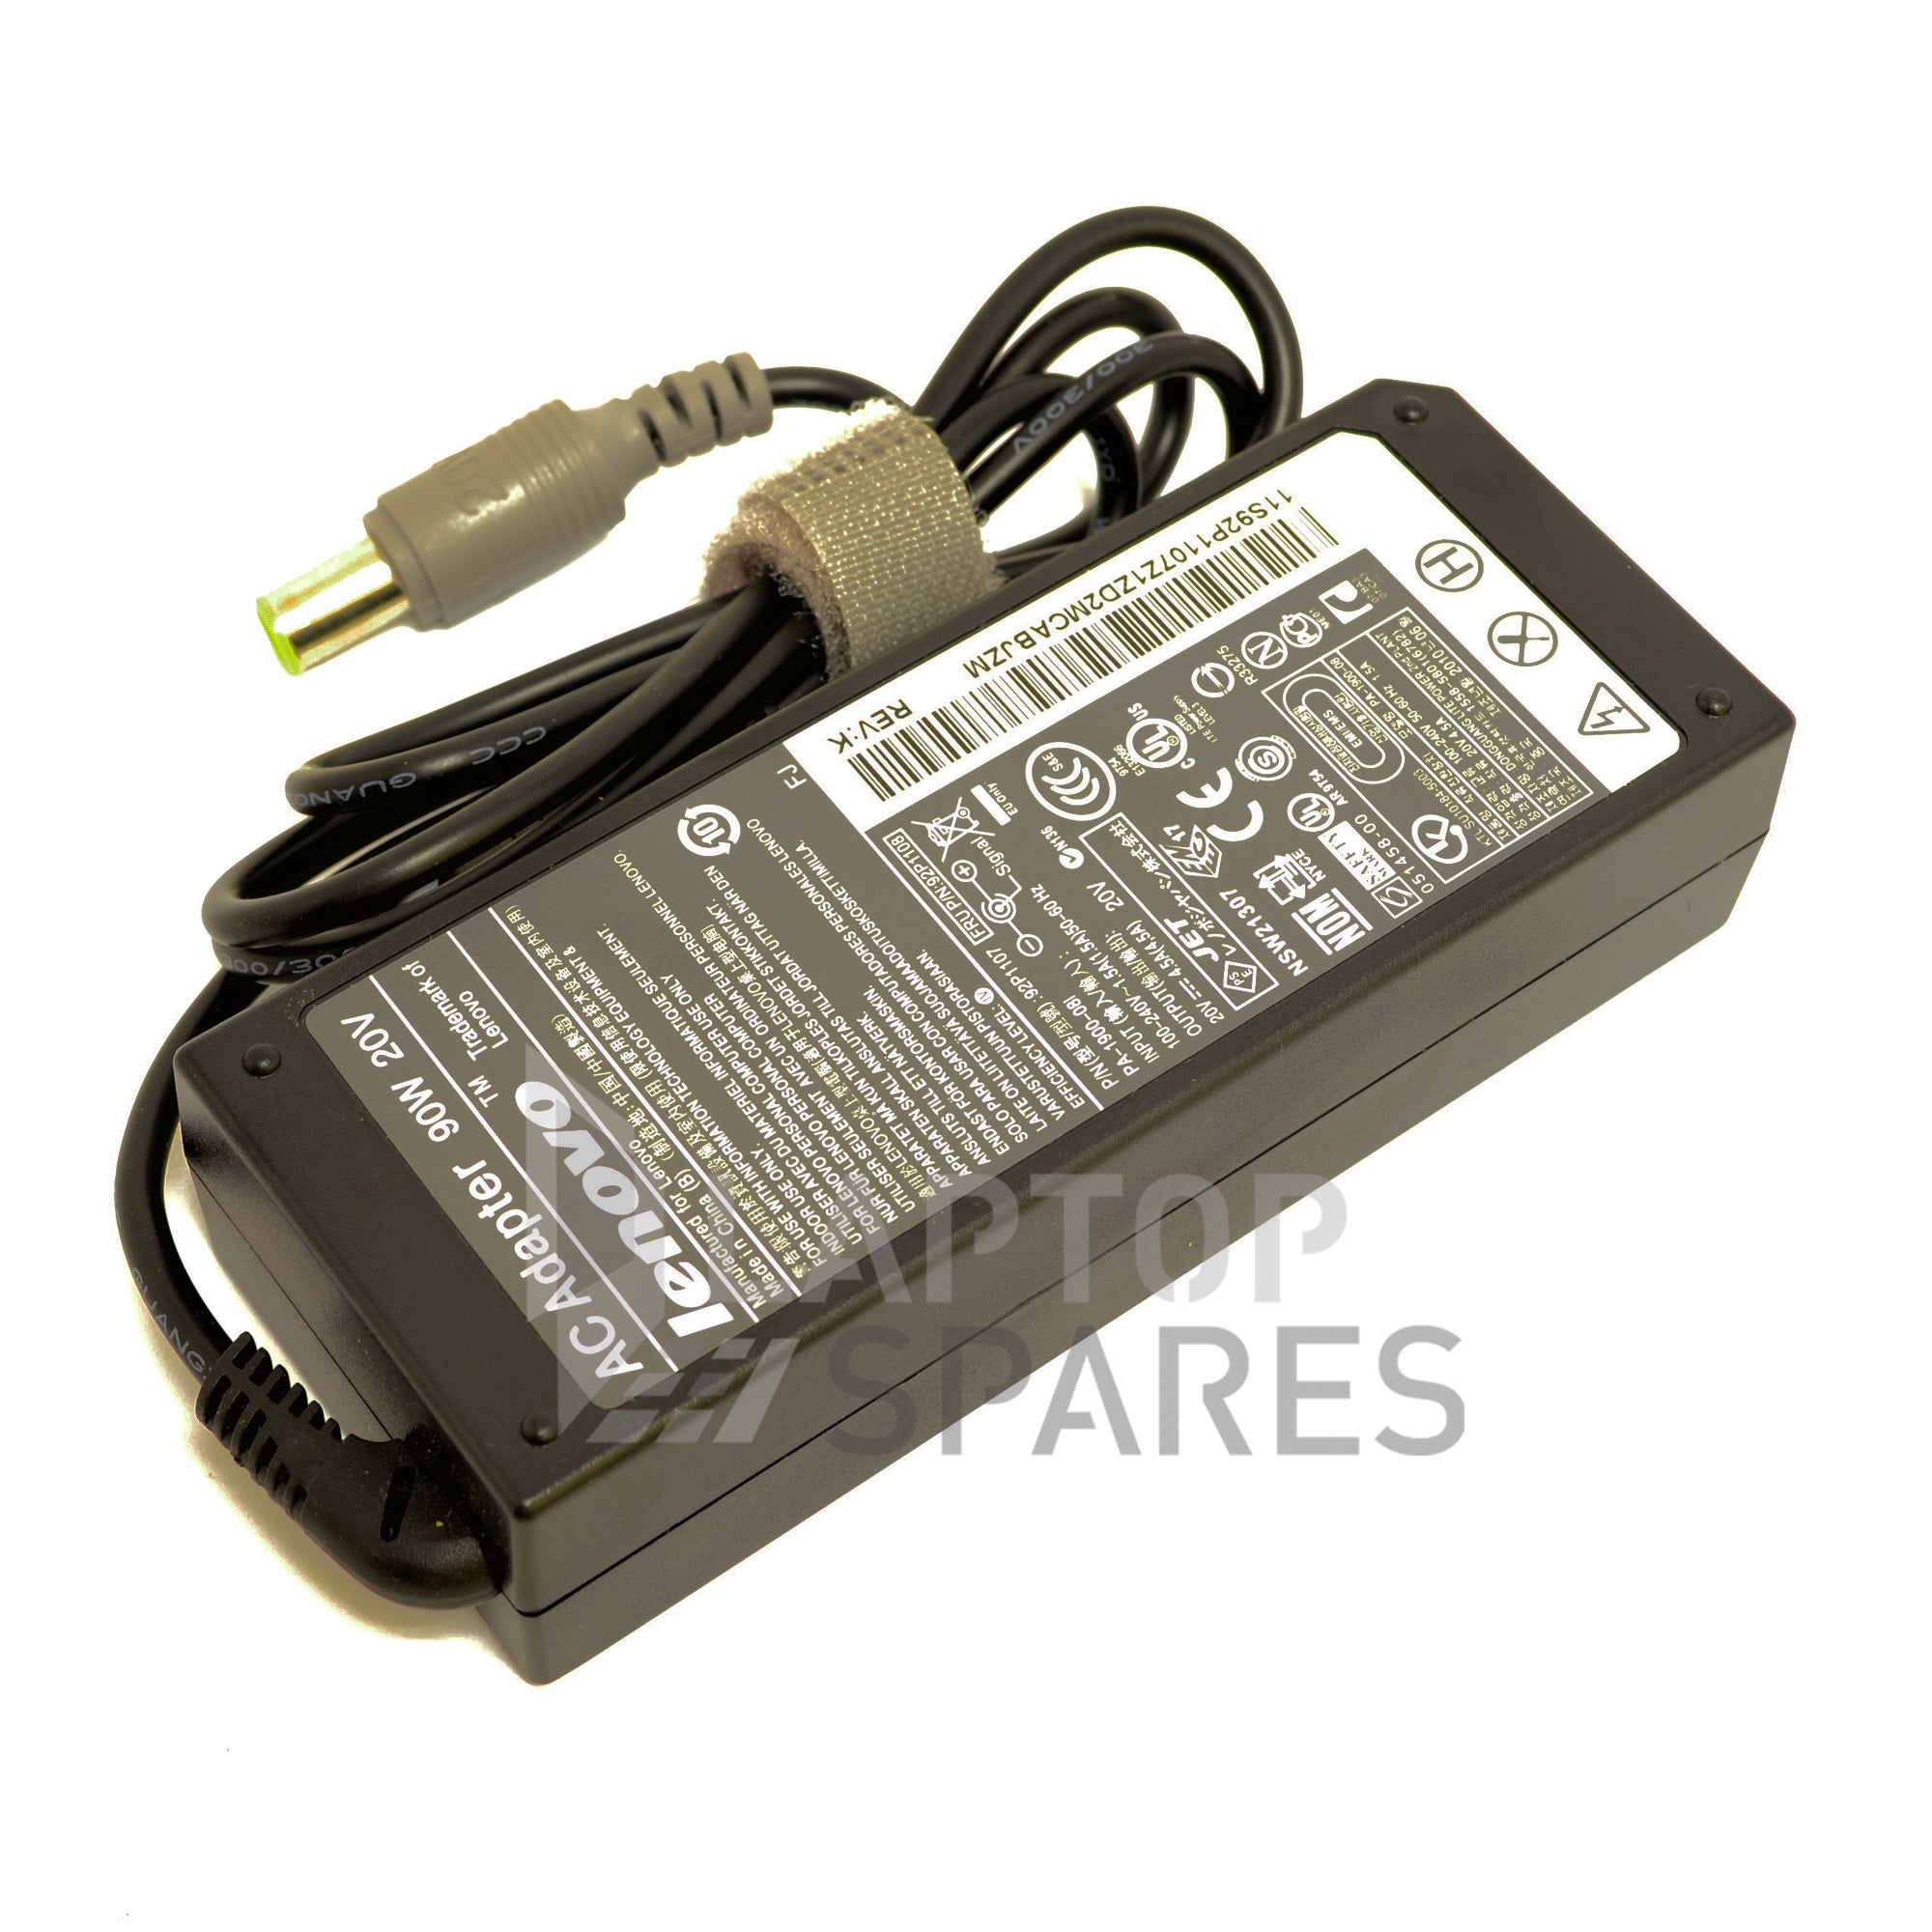 Lenovo 3000 X200 X300 Laptop AC Adapter Charger